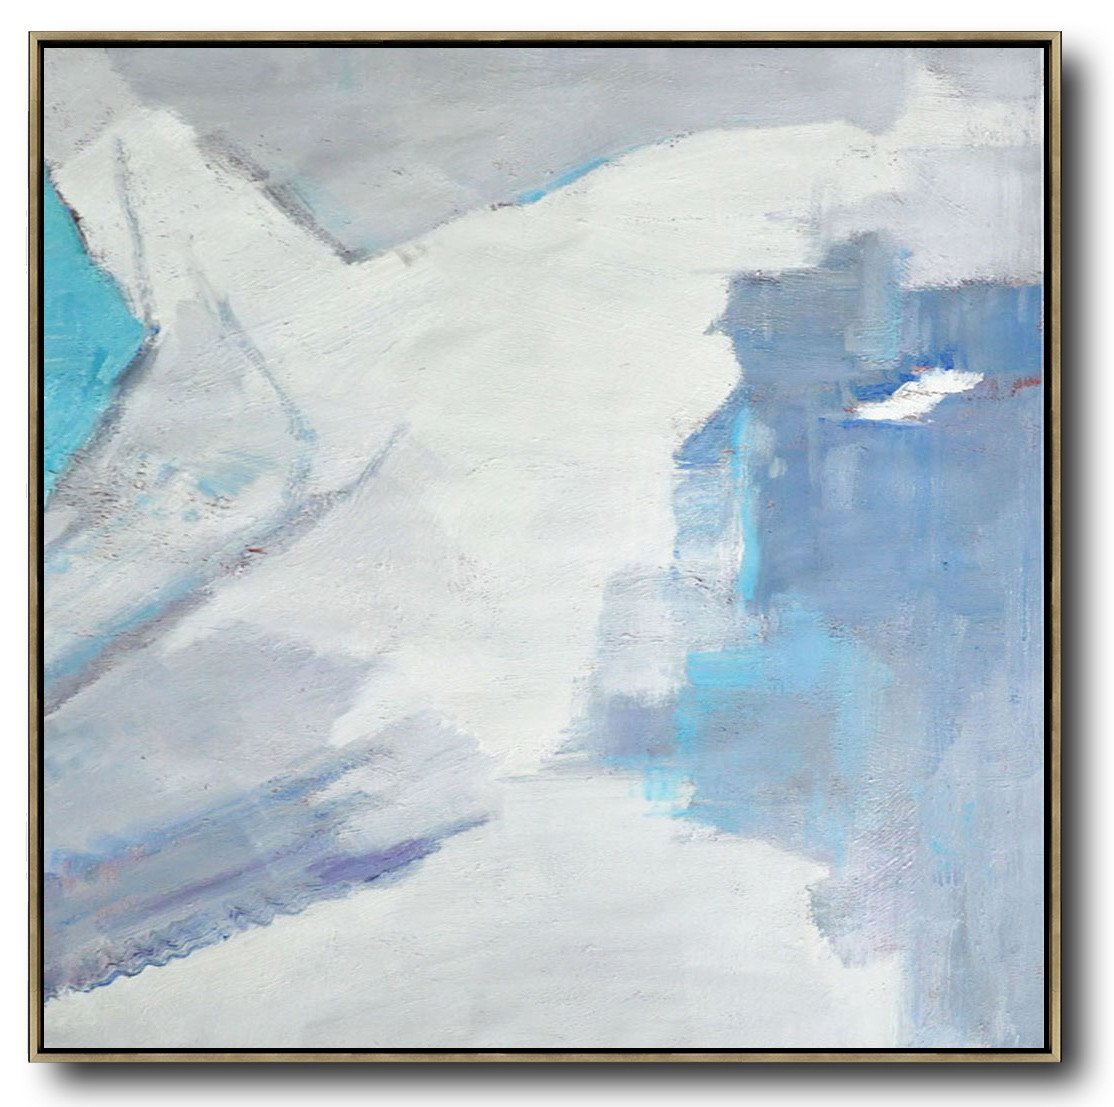 Original Abstract Painting Extra Large Canvas Art,Oversized Contemporary Art,Giant Wall Decor,Sky Blue,White,Grey.etc